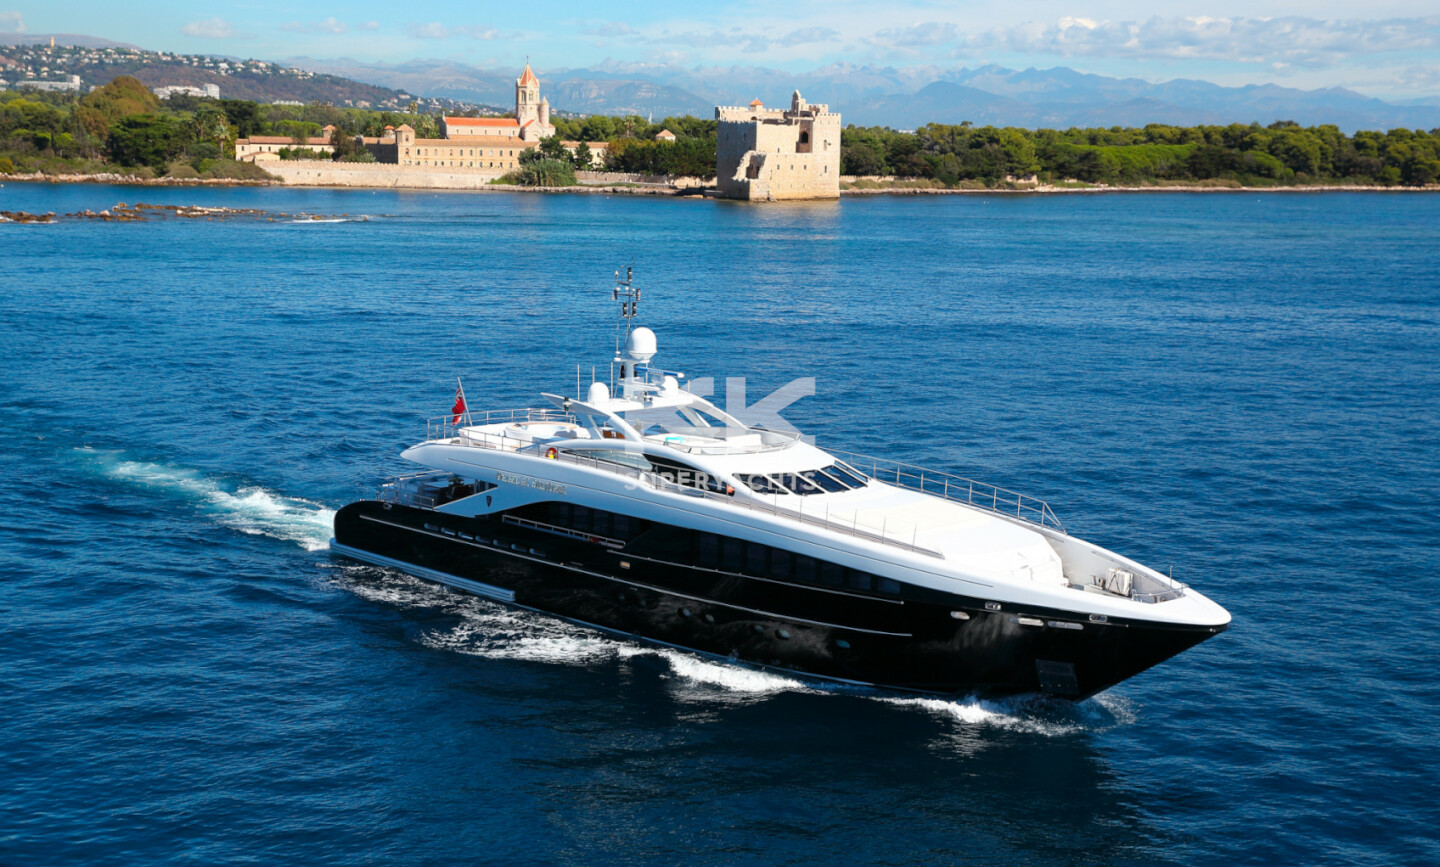 Perle Noire yacht for Sale